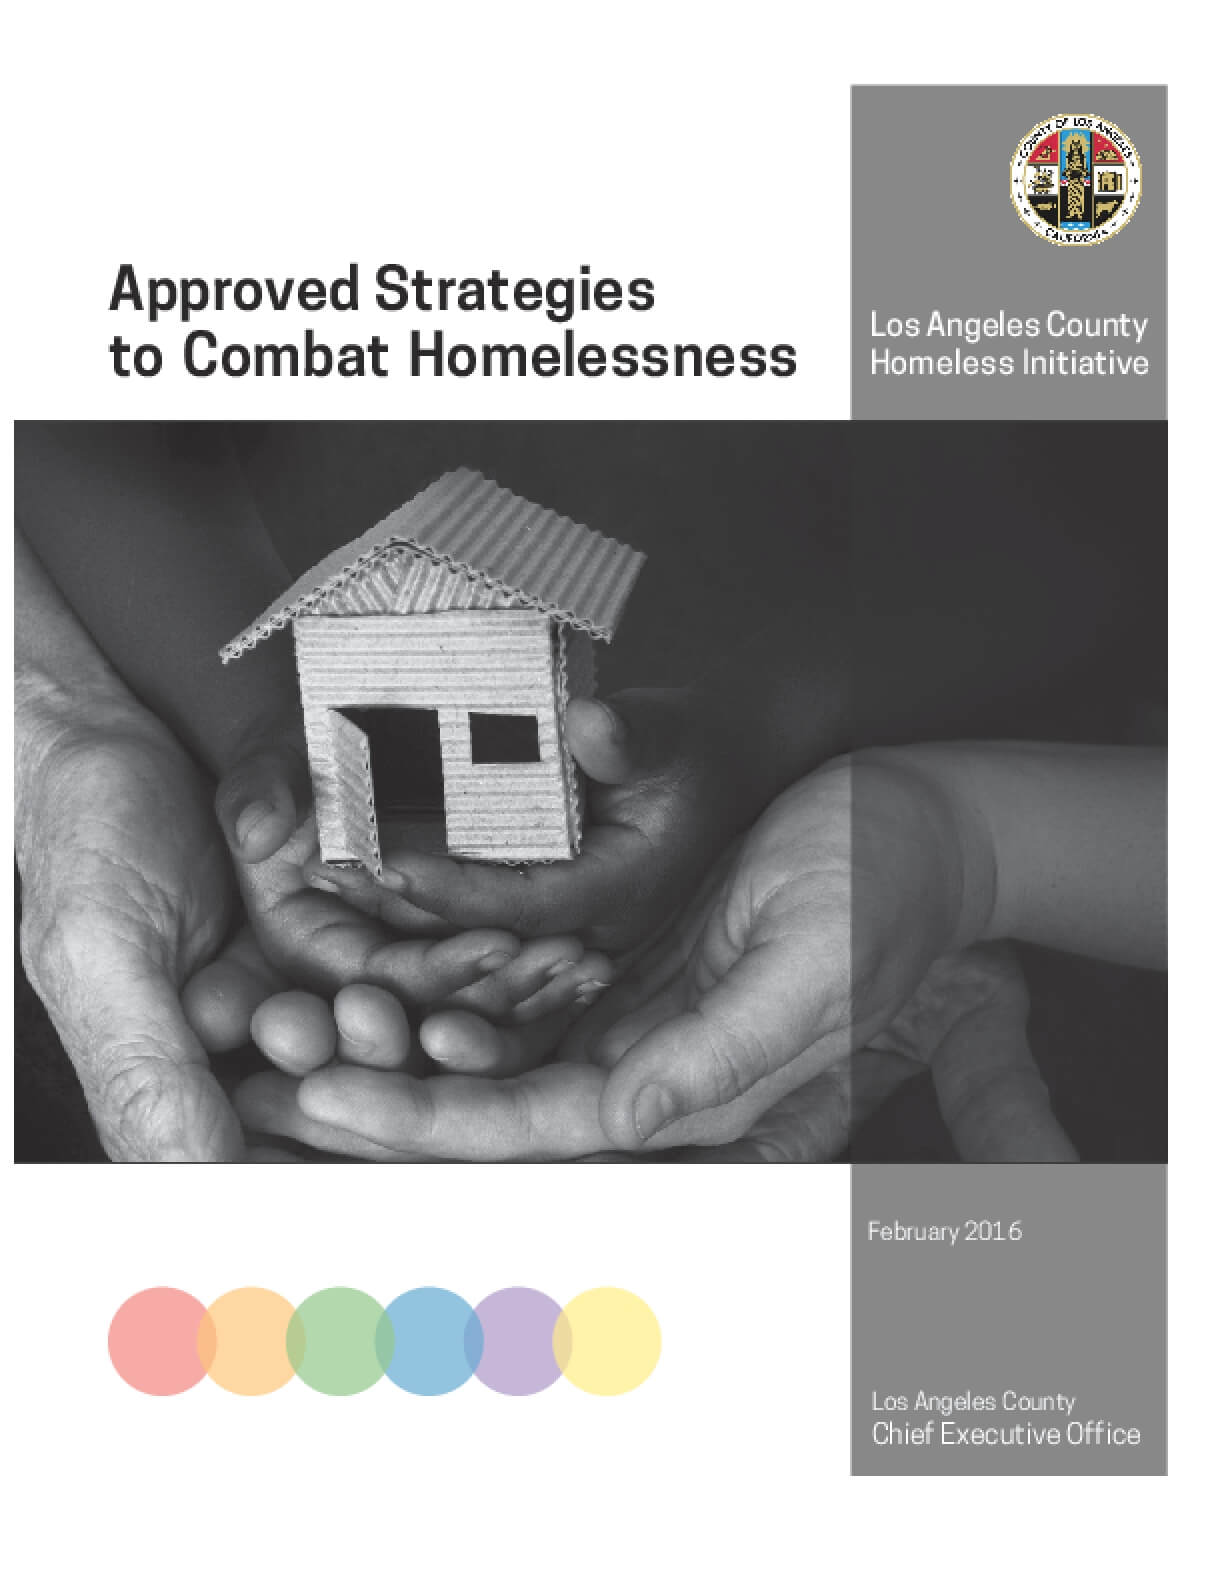 Approved Strategies to Combat Homelessness